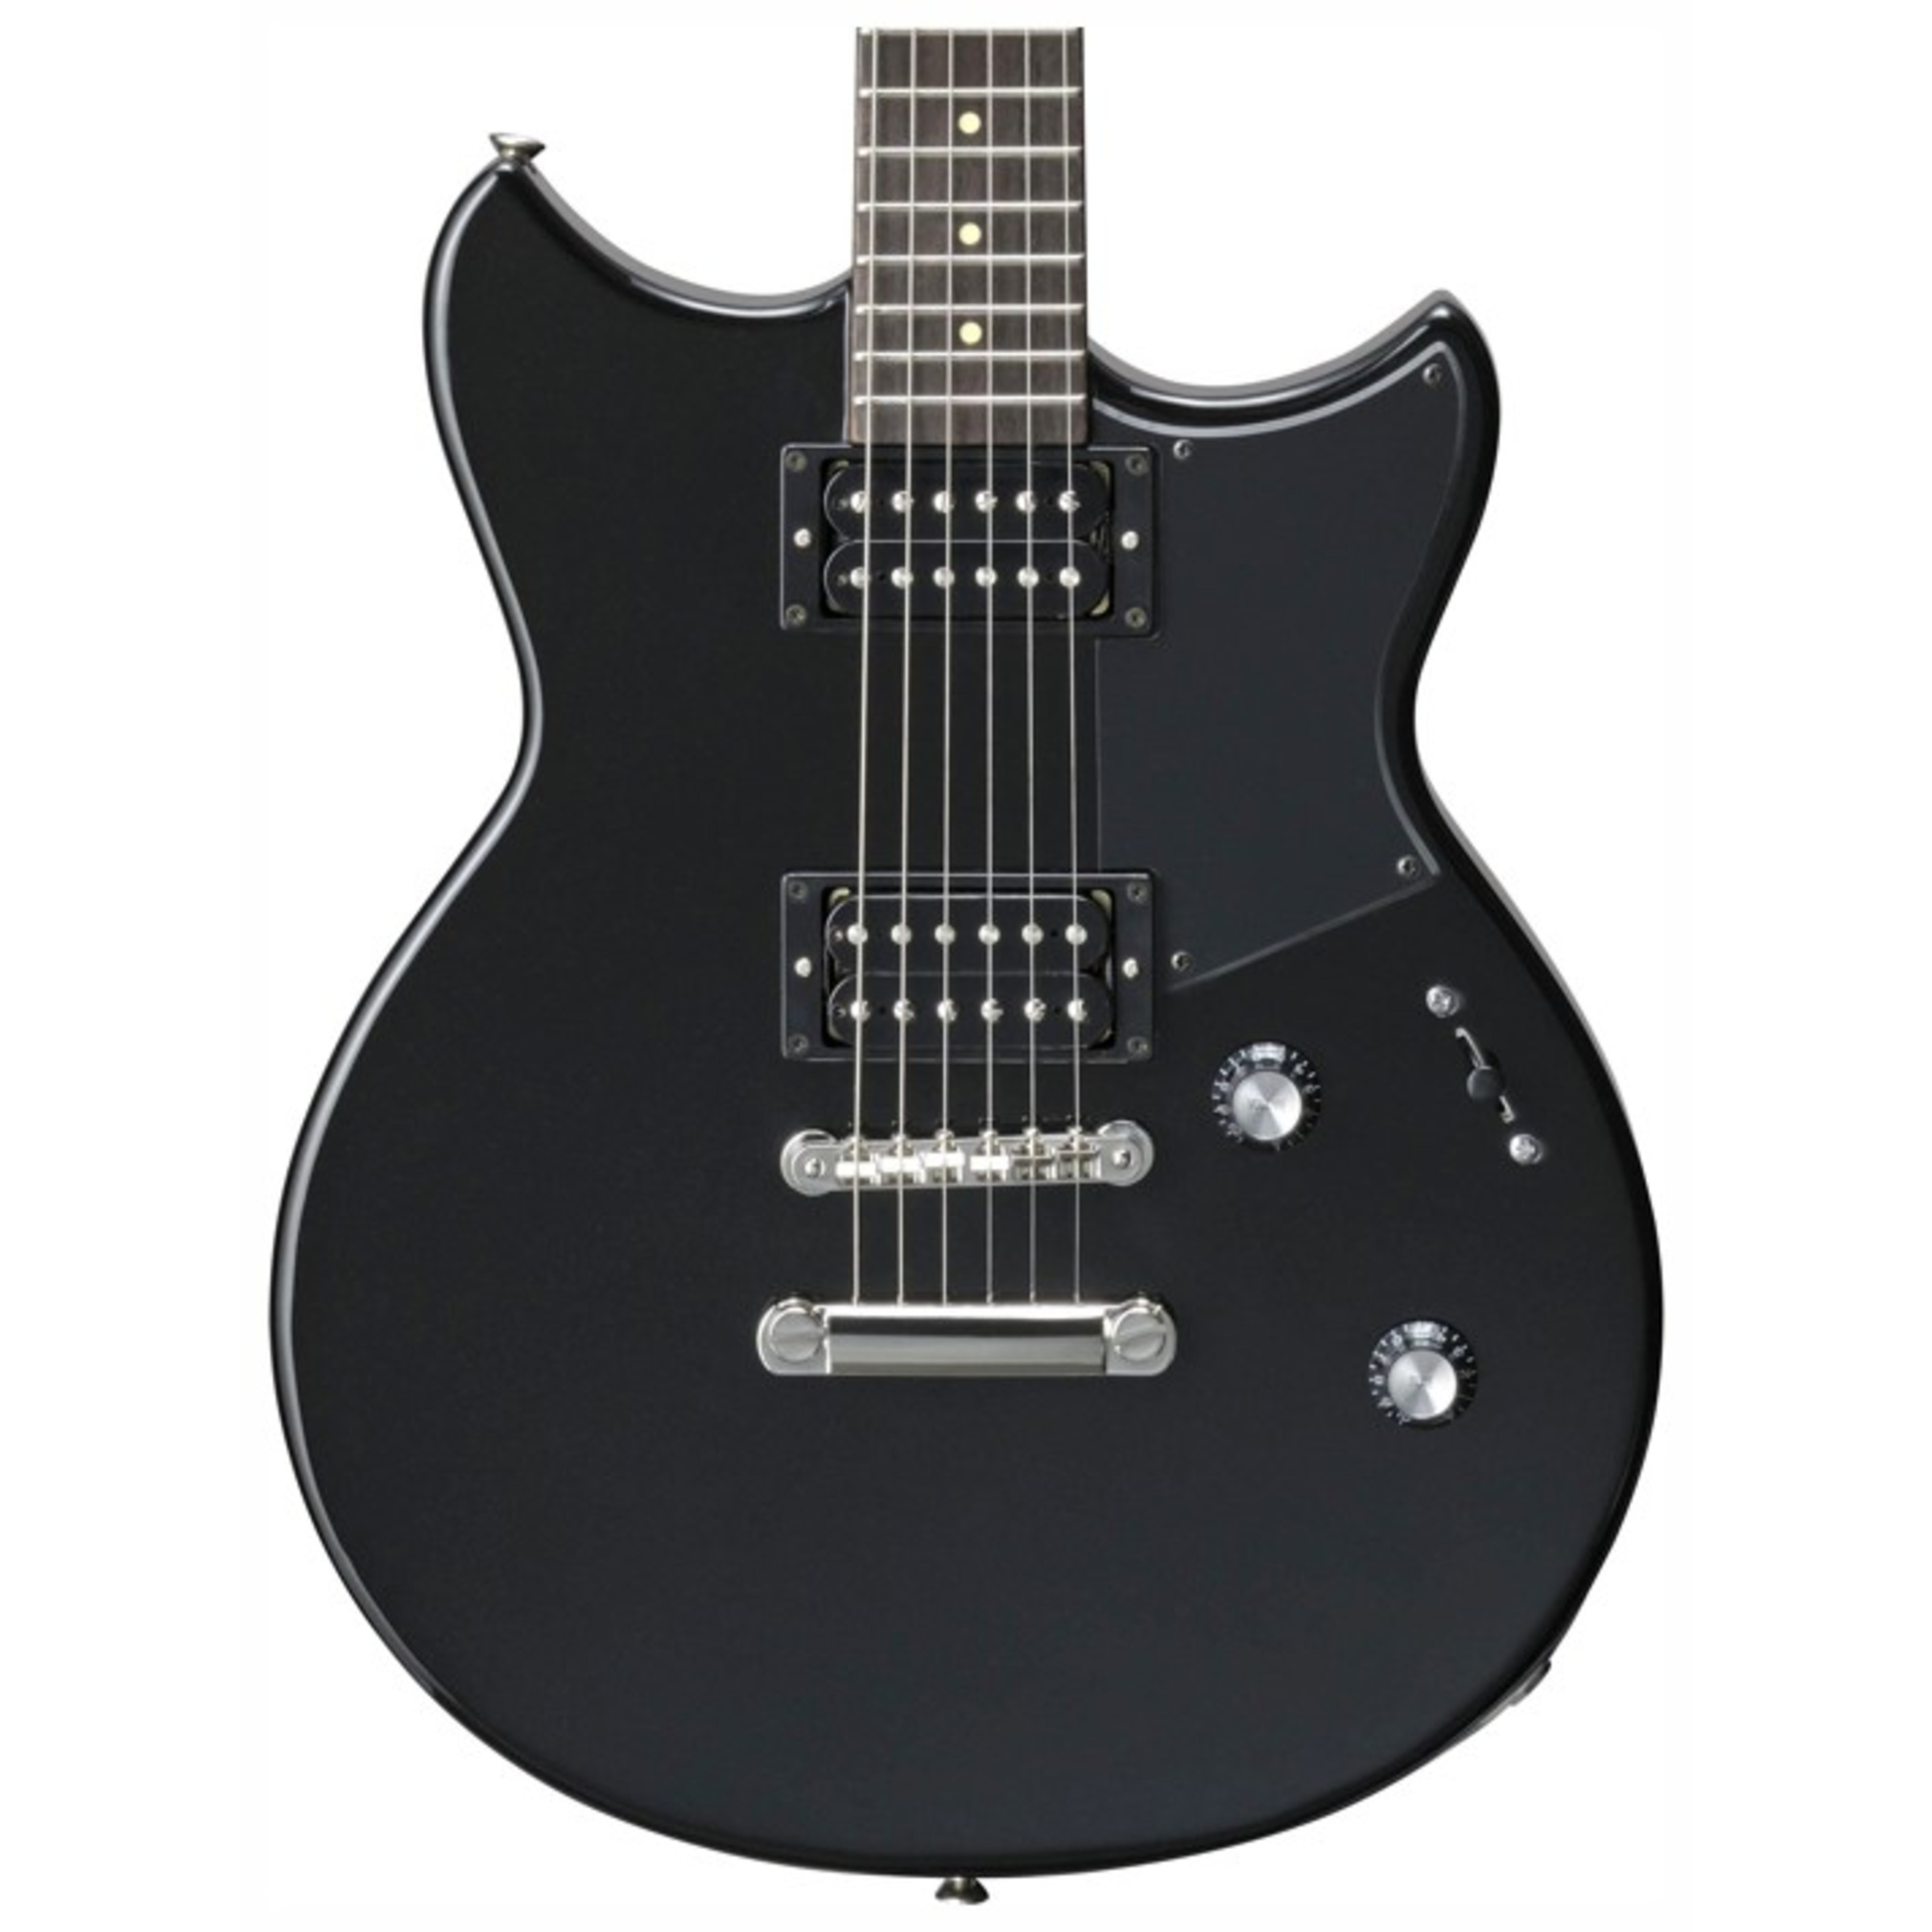 yamaha revstar rs320 electric guitar giggear. Black Bedroom Furniture Sets. Home Design Ideas